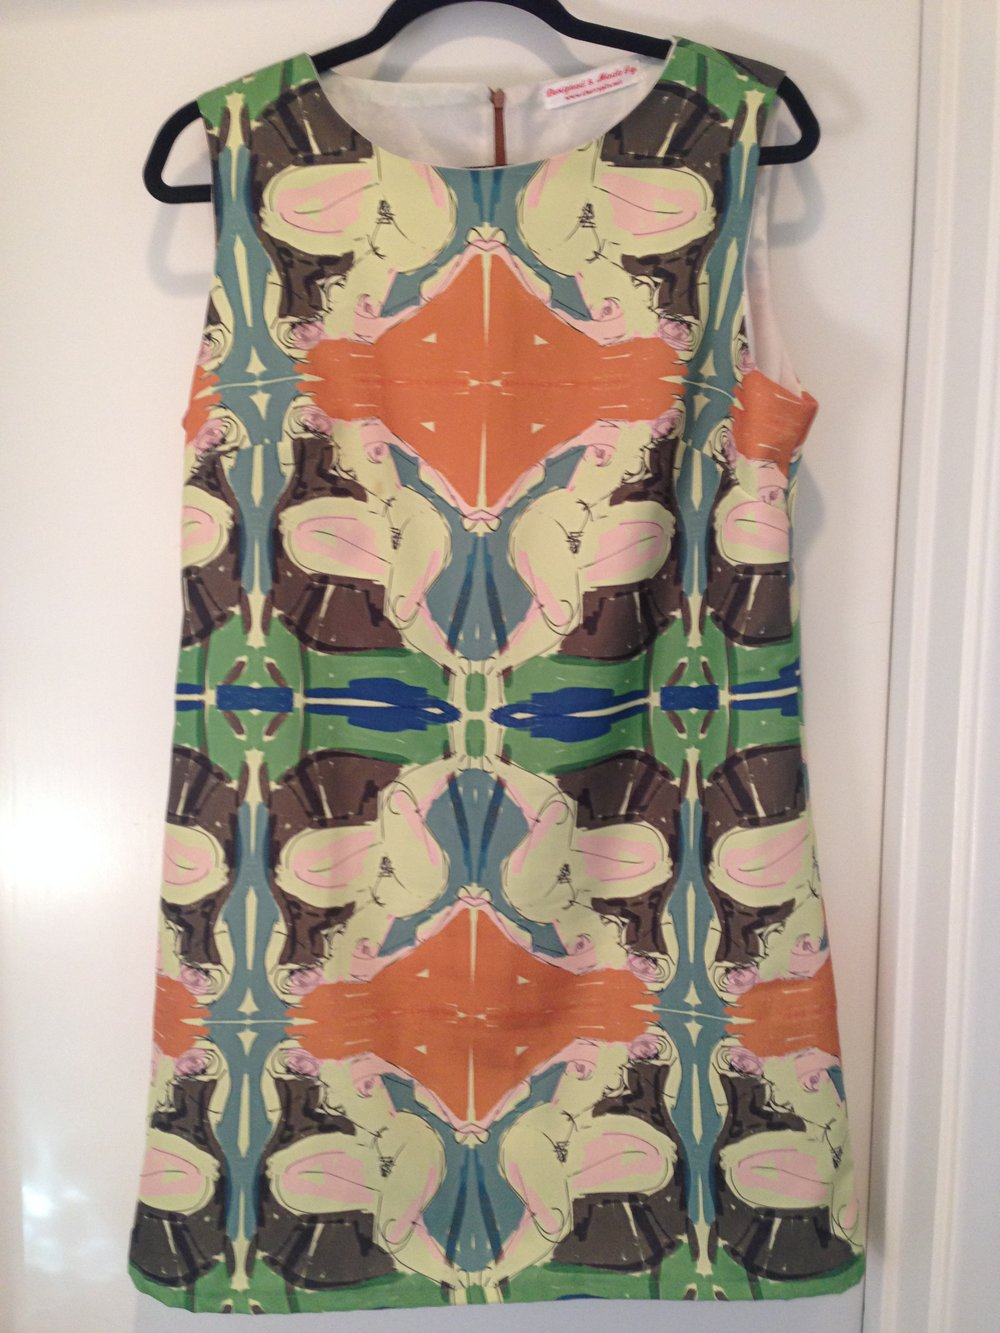 My second dress prototype is now in the collection of interior designer Vicki Simon.